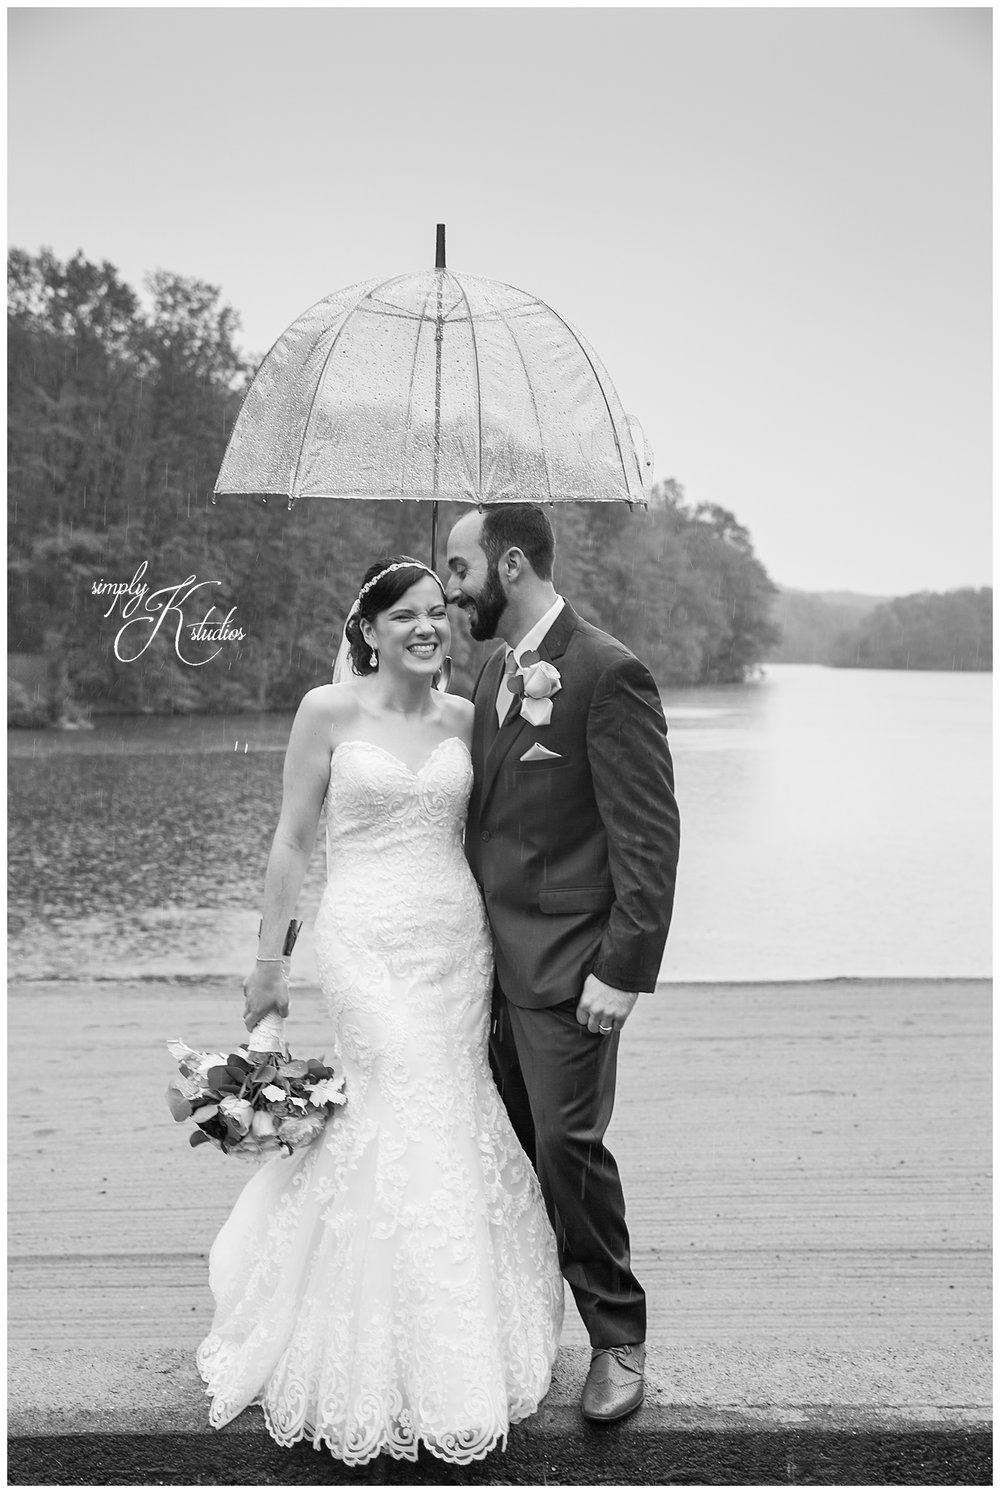 Wedding Photos with Umbrellas.jpg